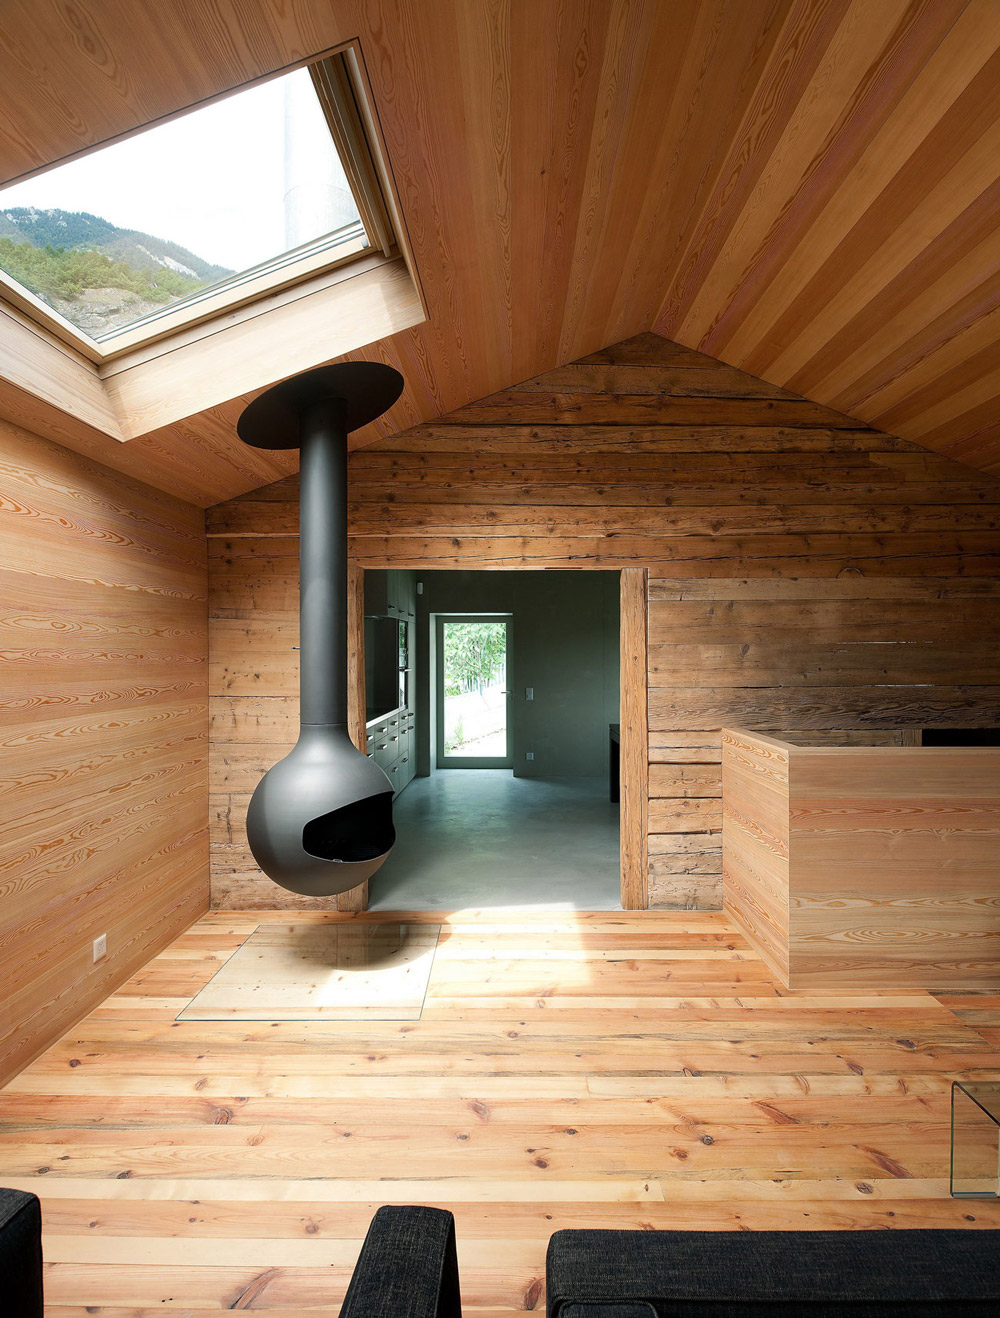 Fireplace, Wooden Flooring, Walls, Ceiling, Home Remodel in Vétroz, Switzerland